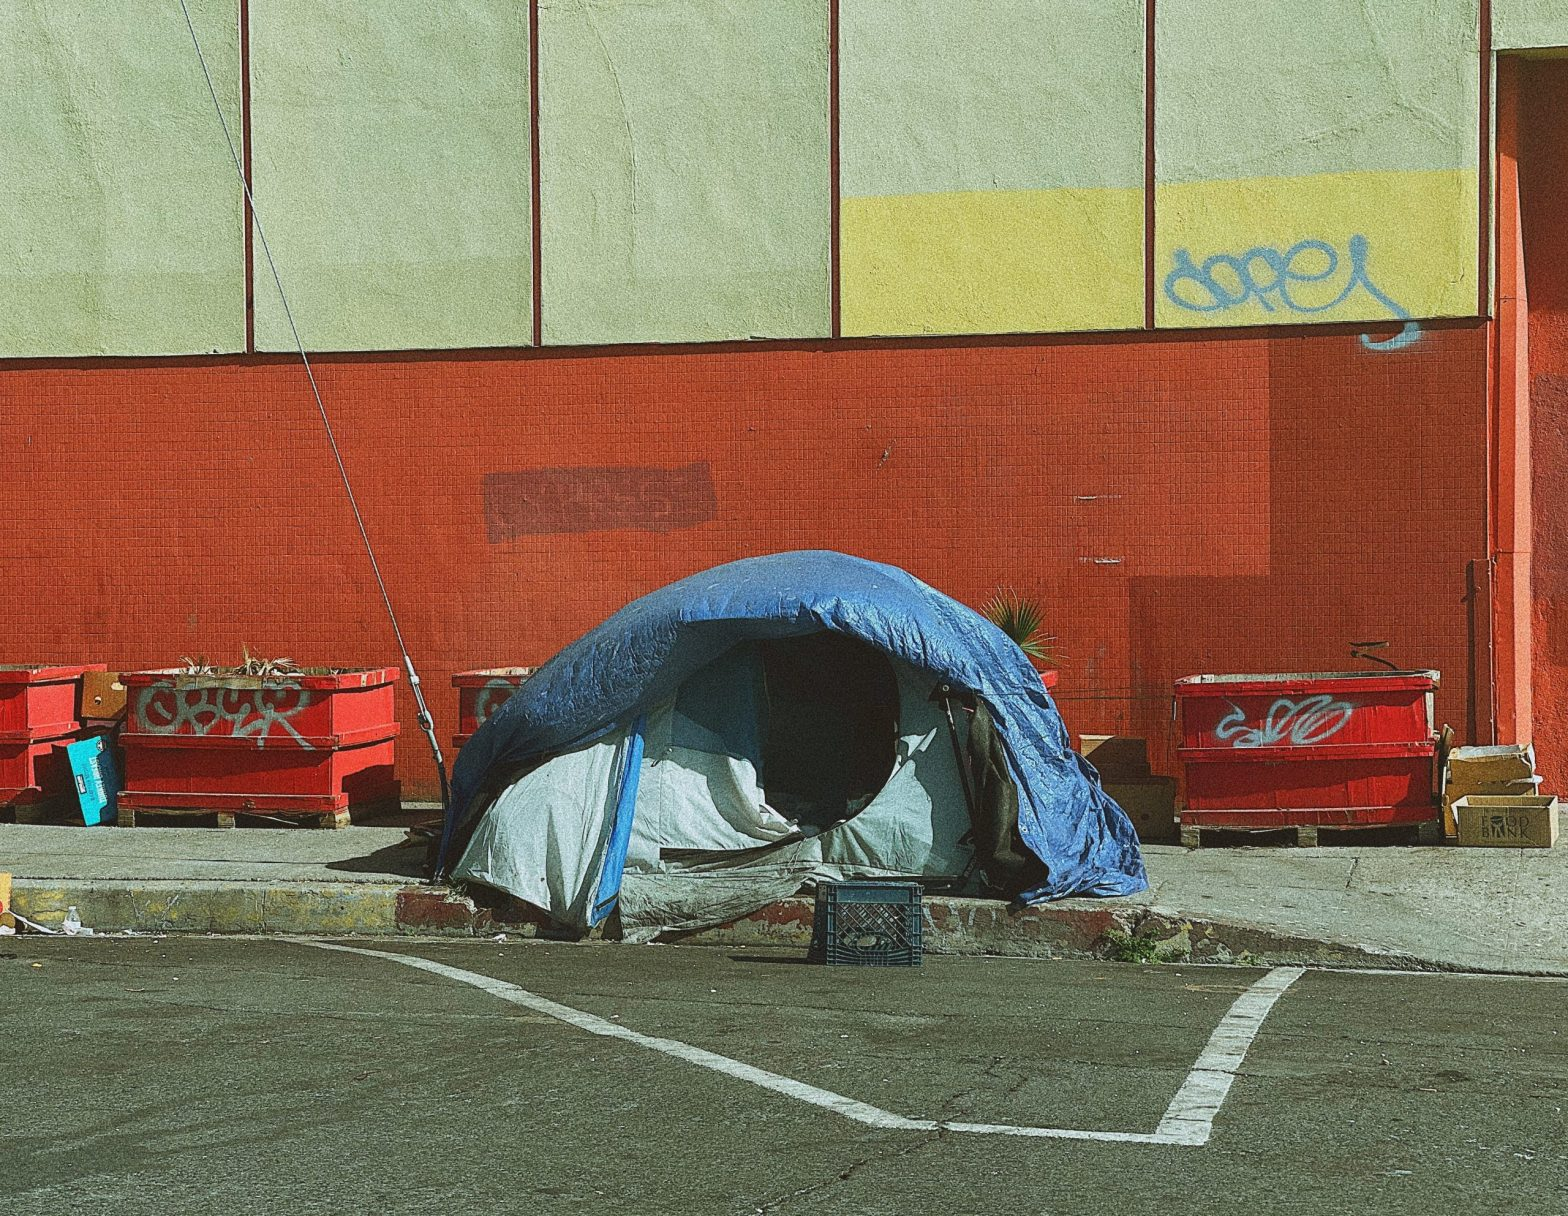 Tent on the sidewalk by some dumpsters. Survival vs living.